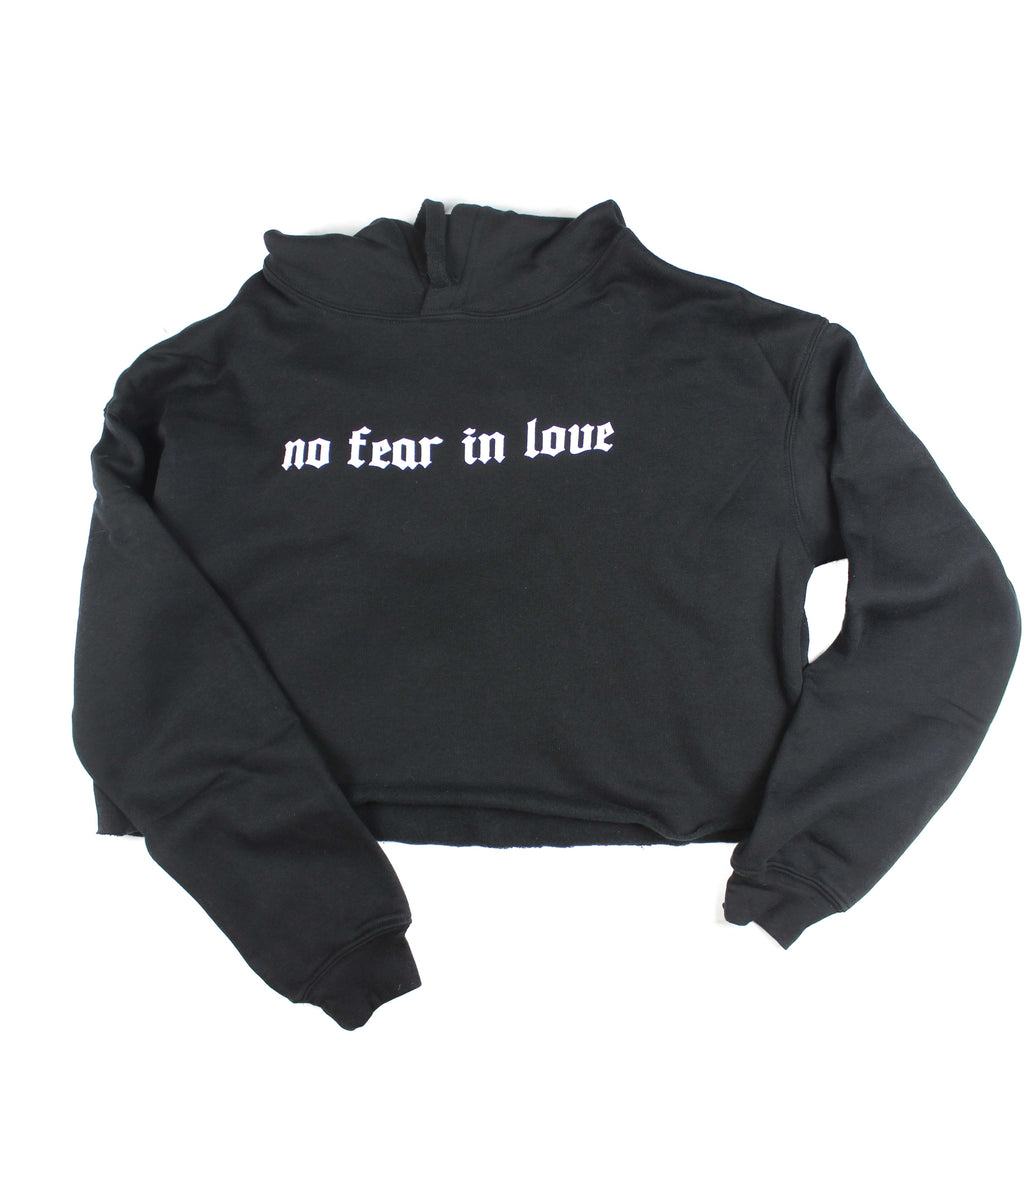 NO FEAR IN LOVE BLACK CROPPED HOODIE